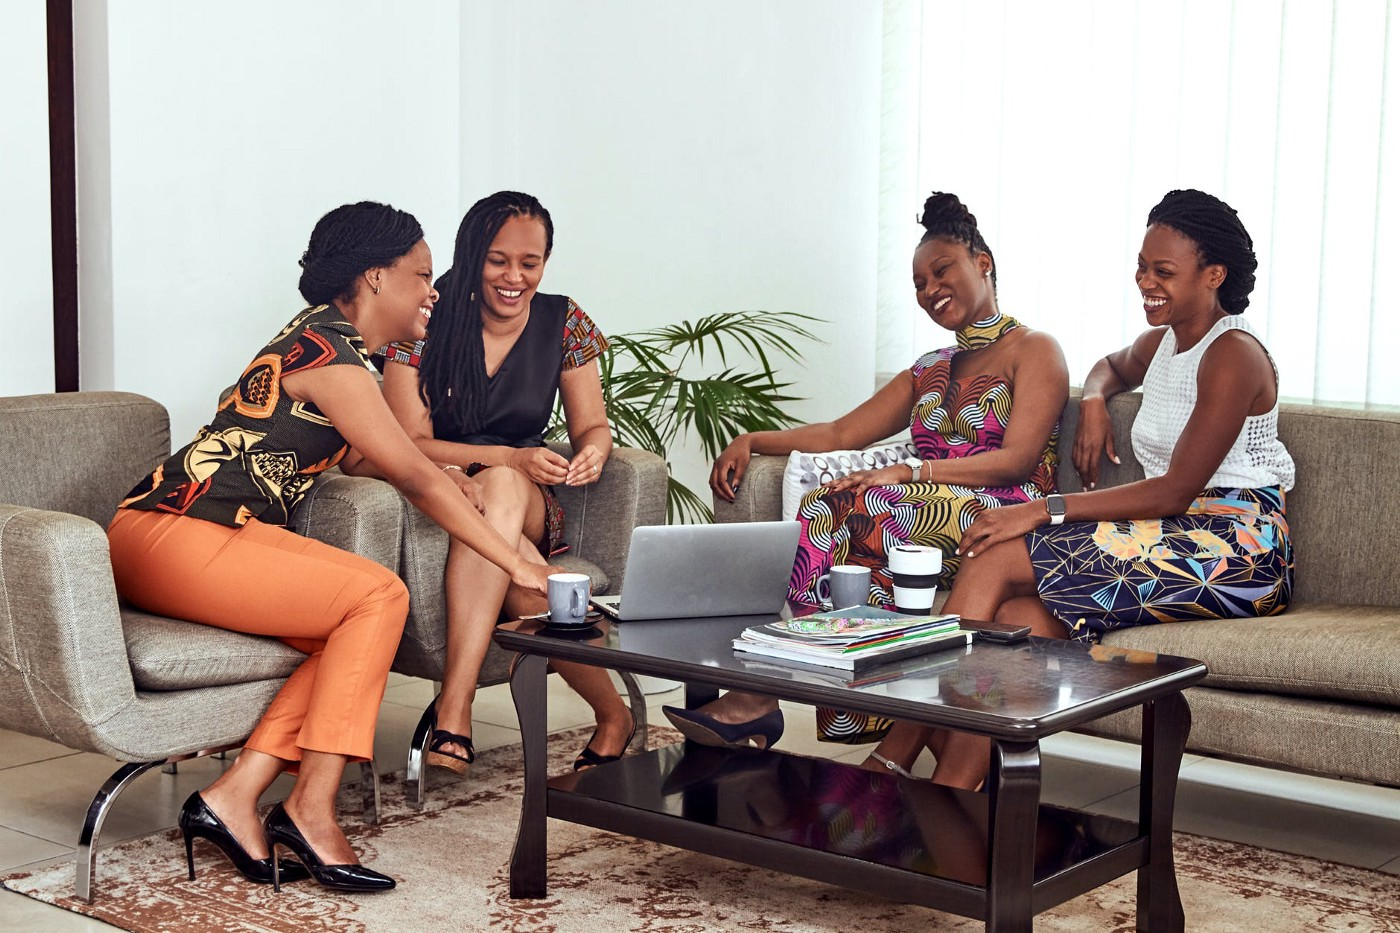 Shecluded 'One Woman One Laptop' Initiative 2020 for women-led businesses in Nigeria affected by COVID-19